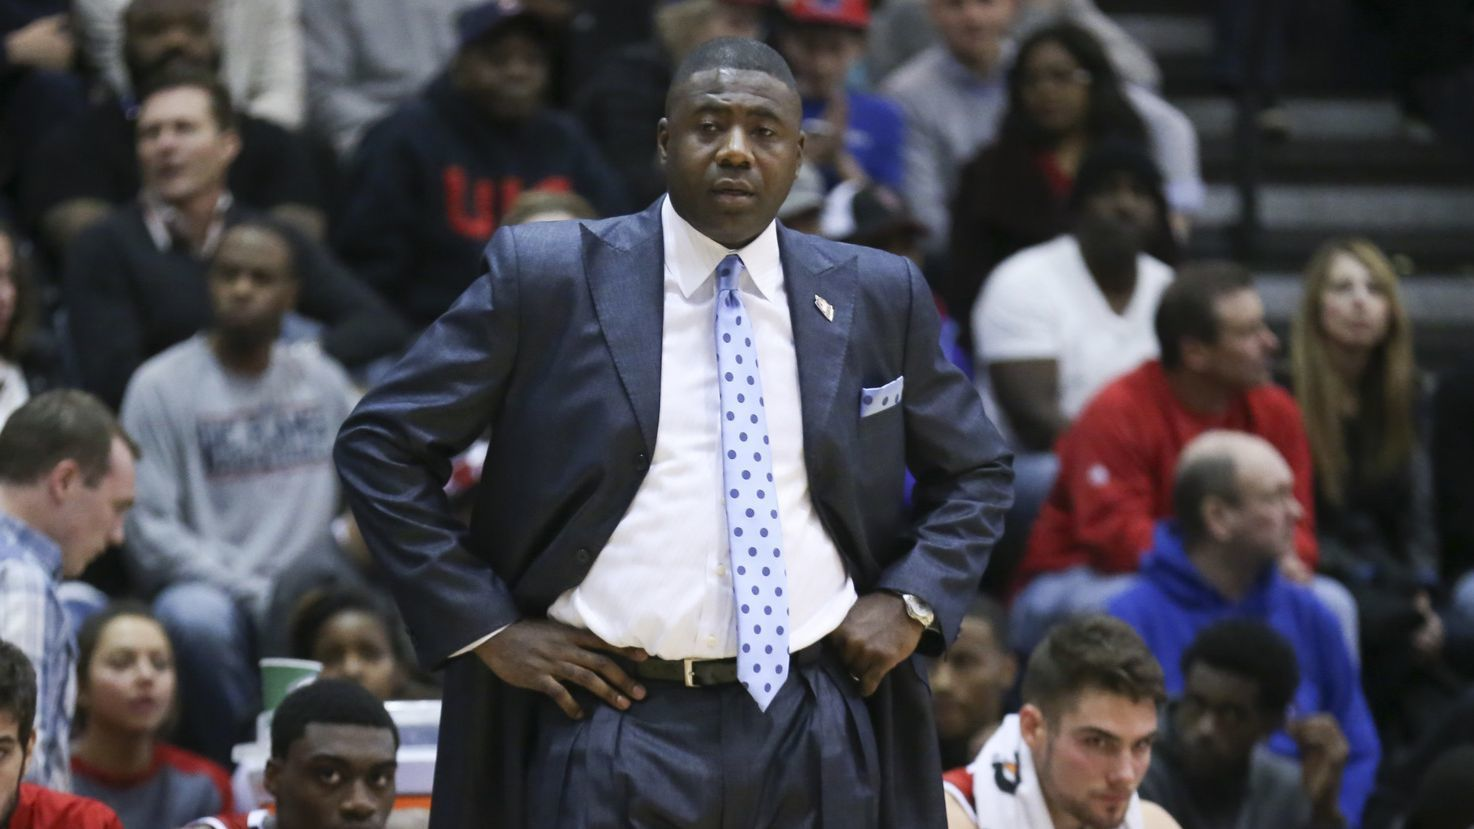 Wife and daughter of former UIC basketball coach Howard Moore killed in an auto accident in Michigan, report says